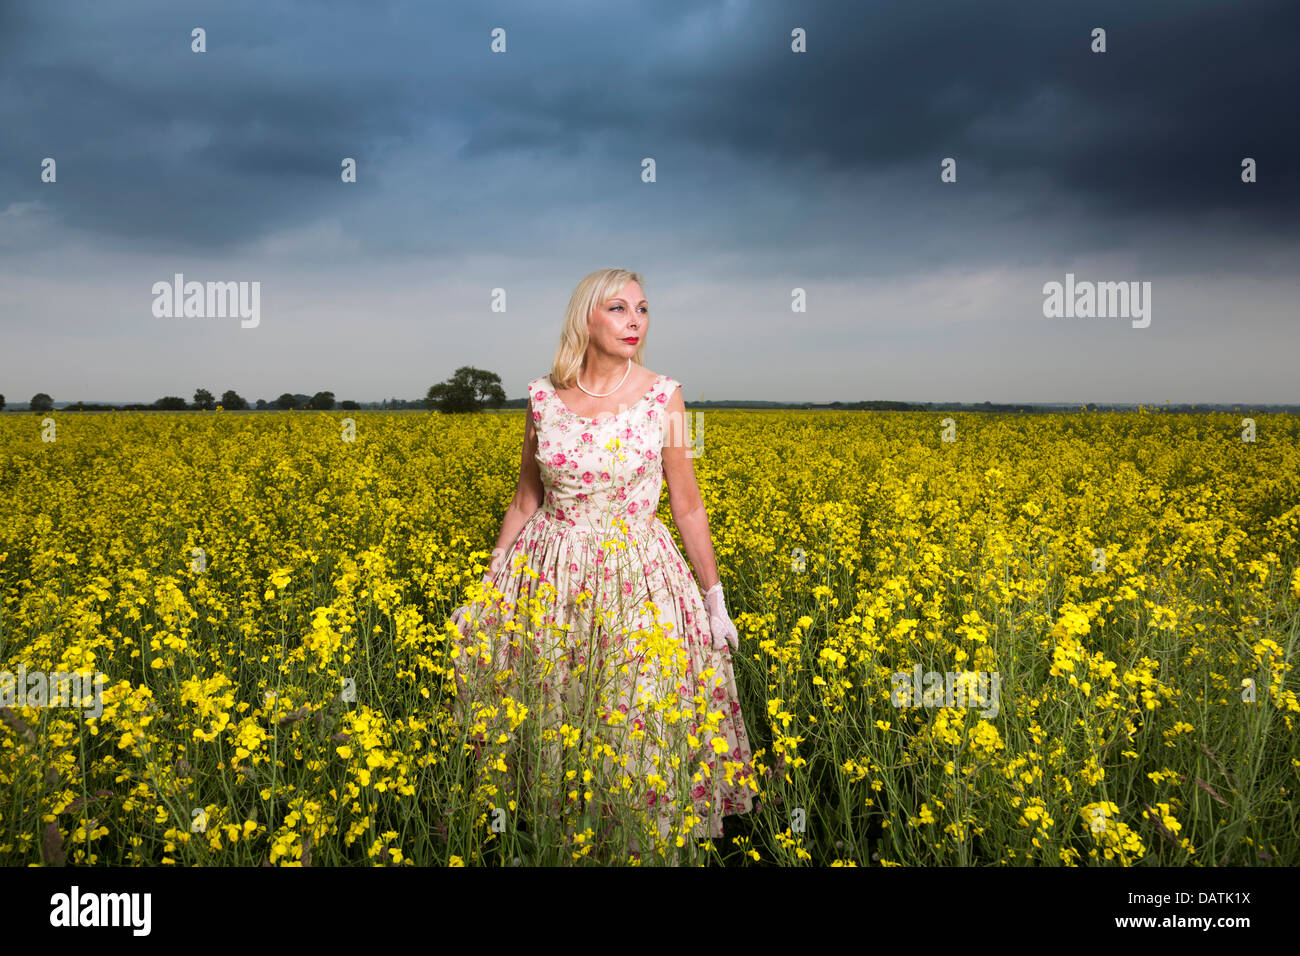 woman standing in field in open countryside with oilseed crop - Stock Image